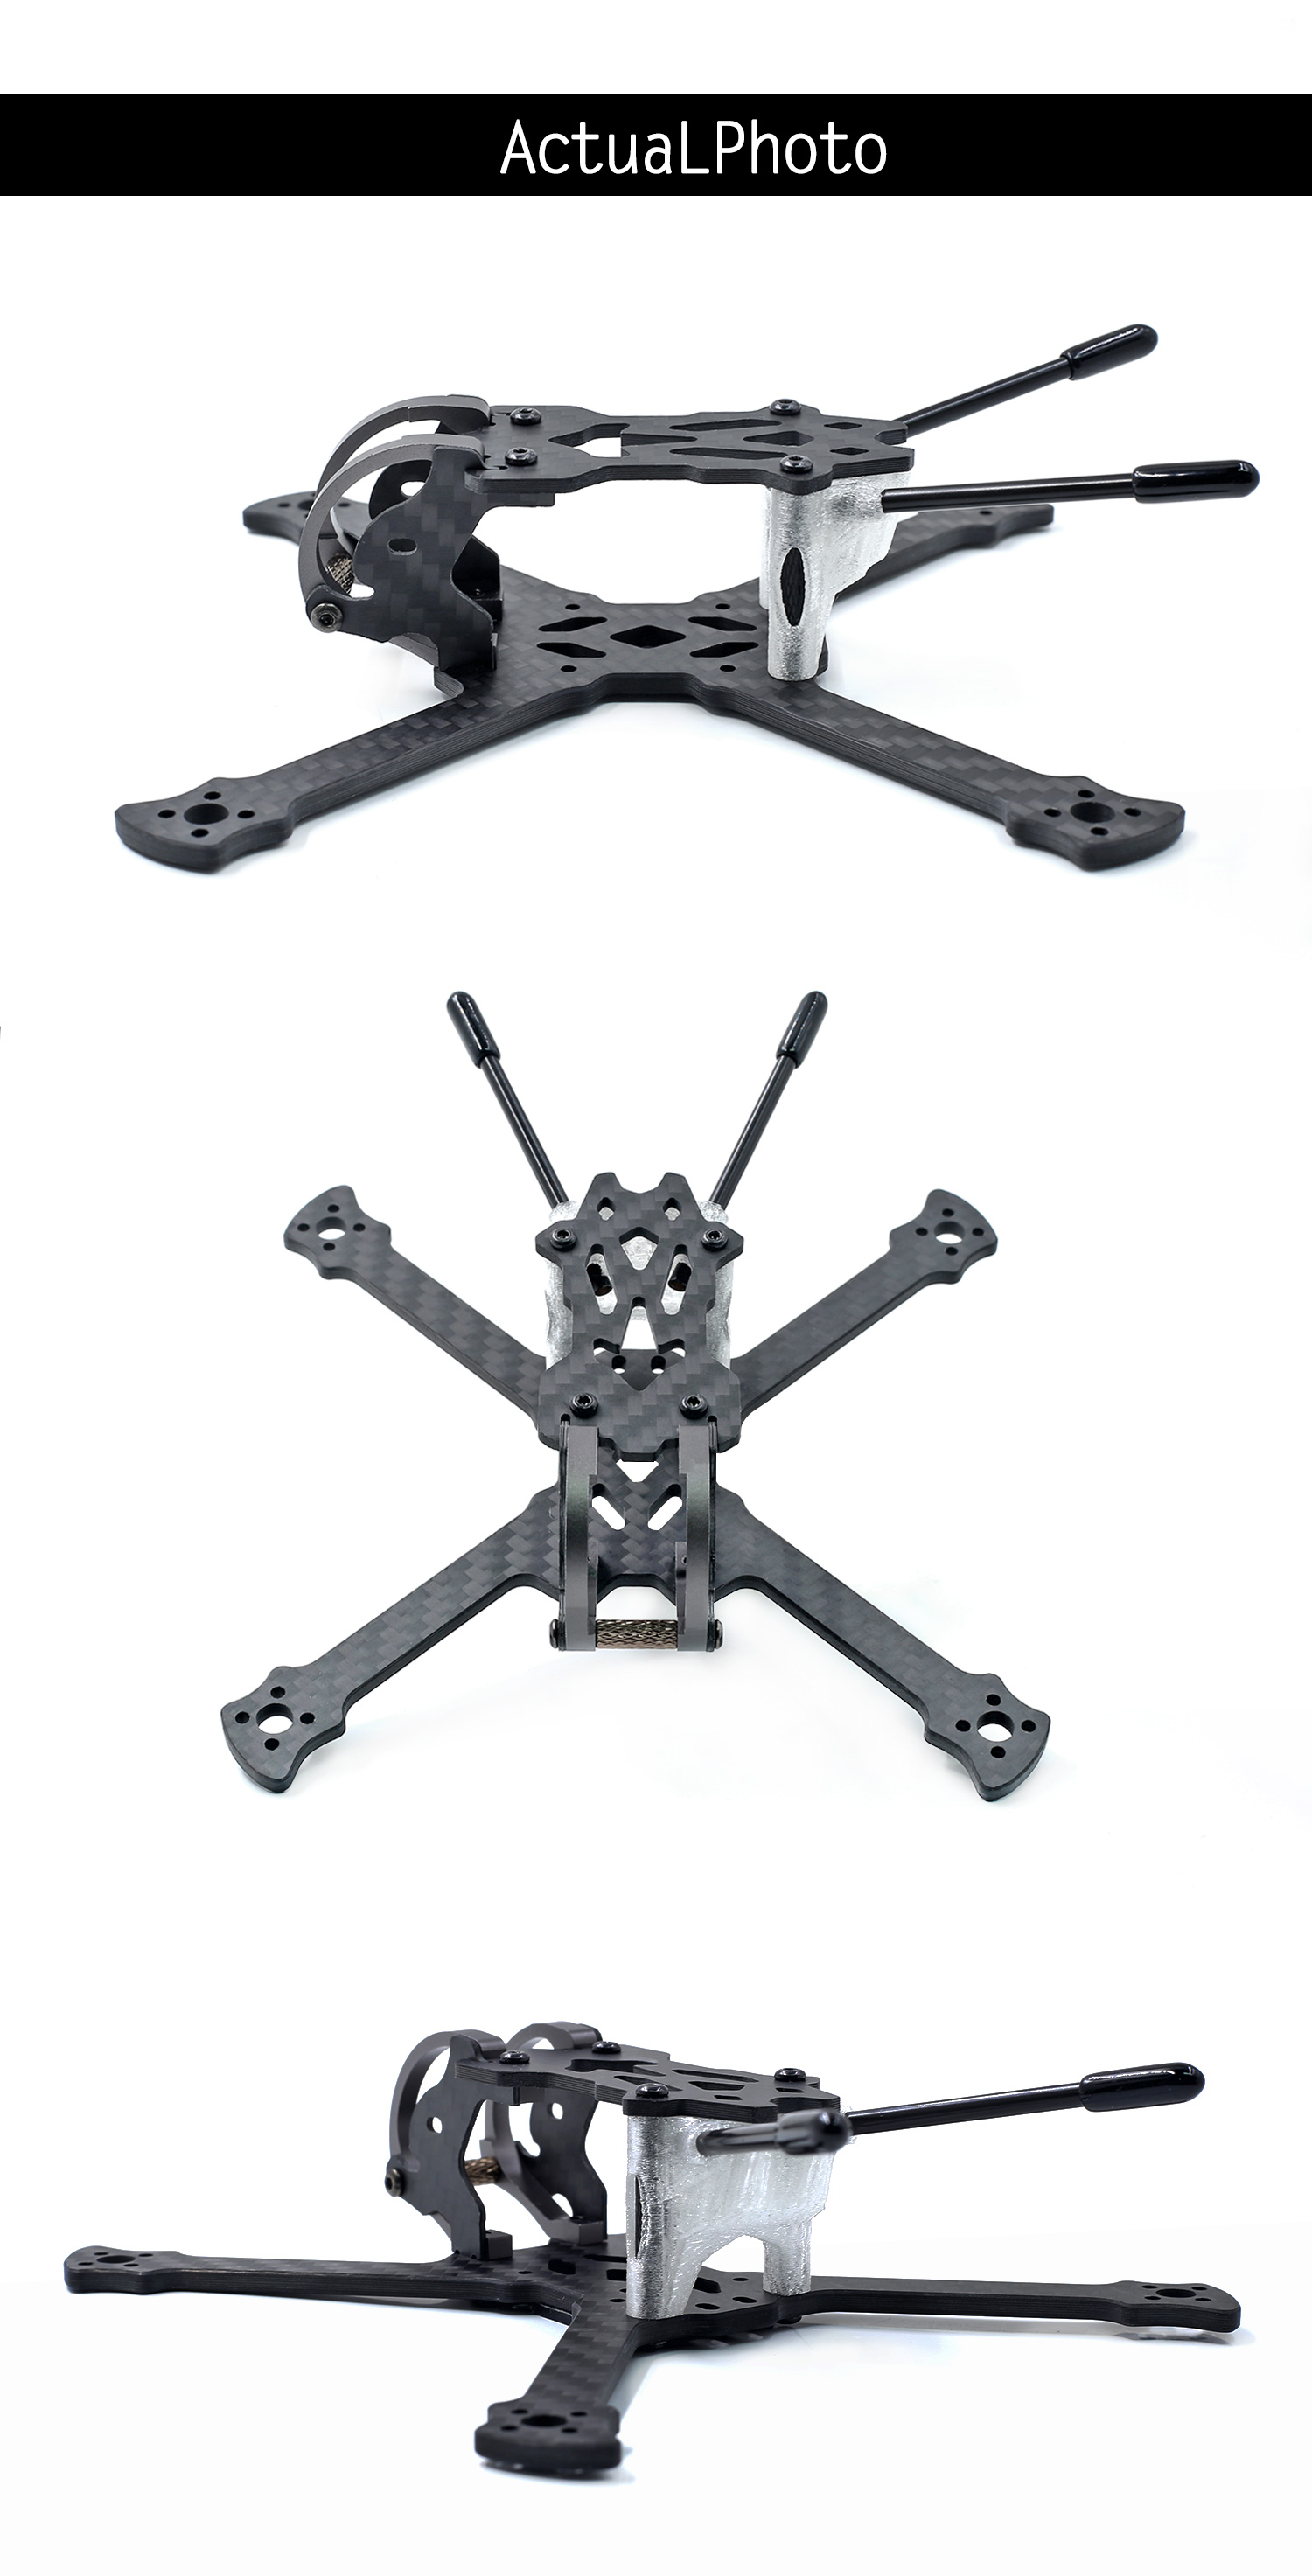 GEPRC GEP-PX3 3 Inch 140mm Wheelbase 3mm Arm 3K Carbon Fiber Frame Kit for RC Drone FPV Racing